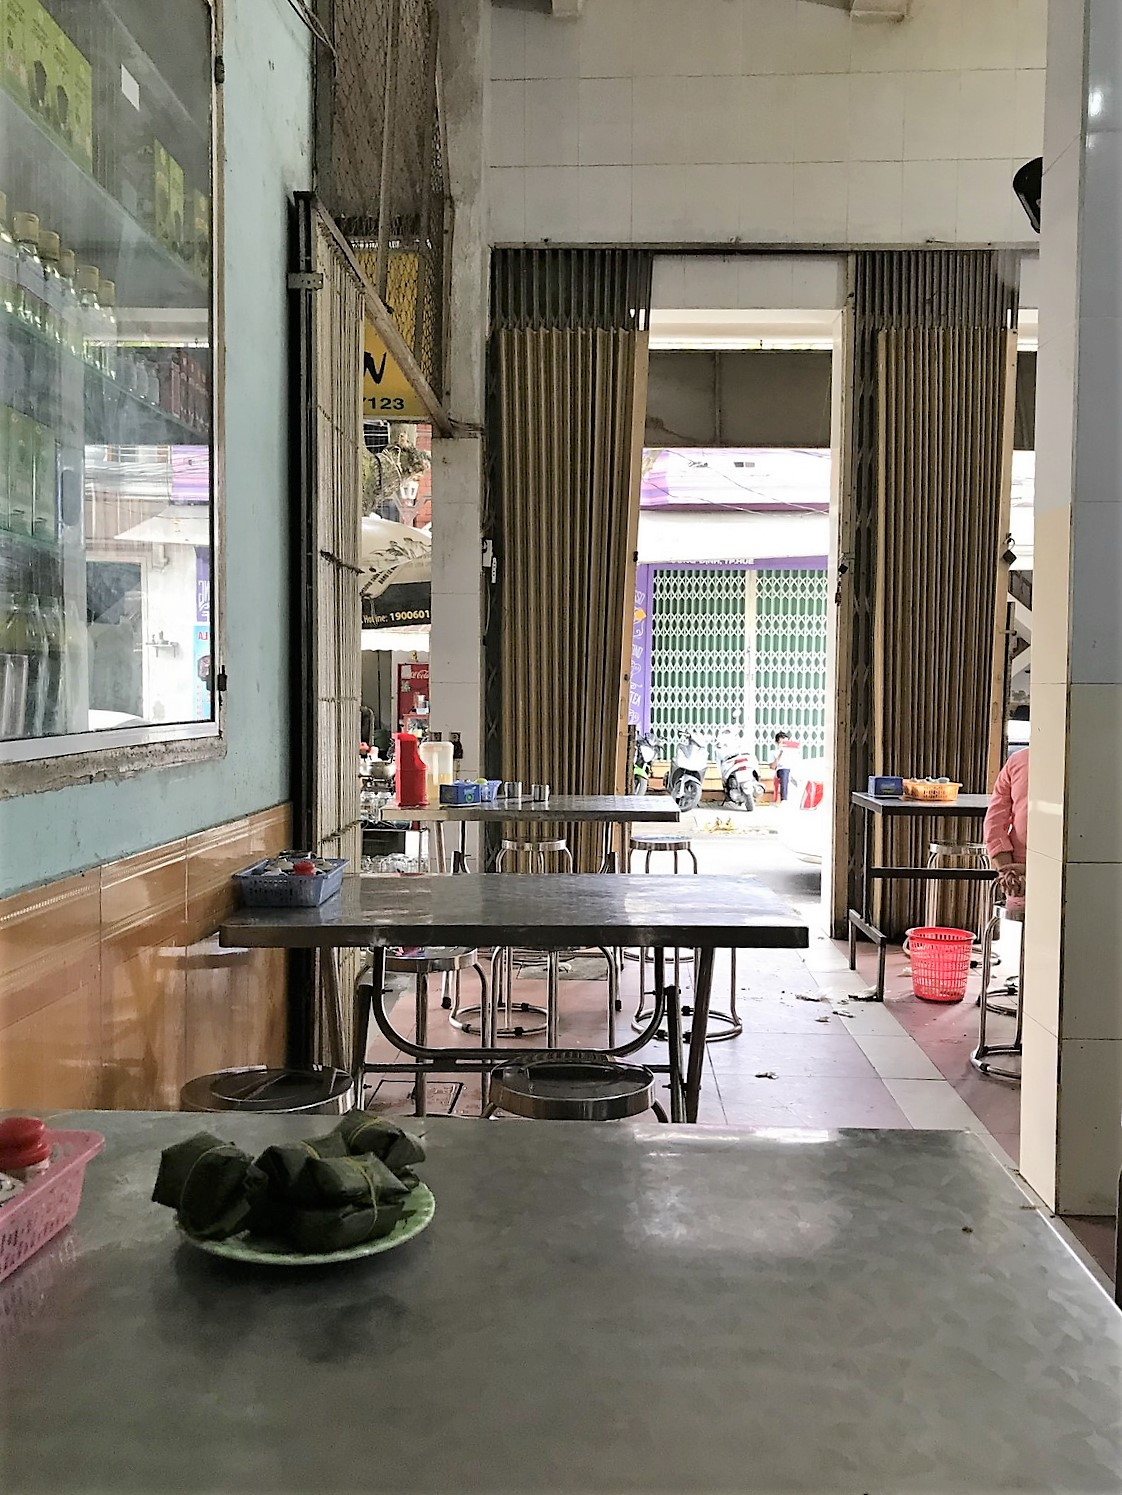 Visit Ba Hoa for authentic Vietnamese food in Hue